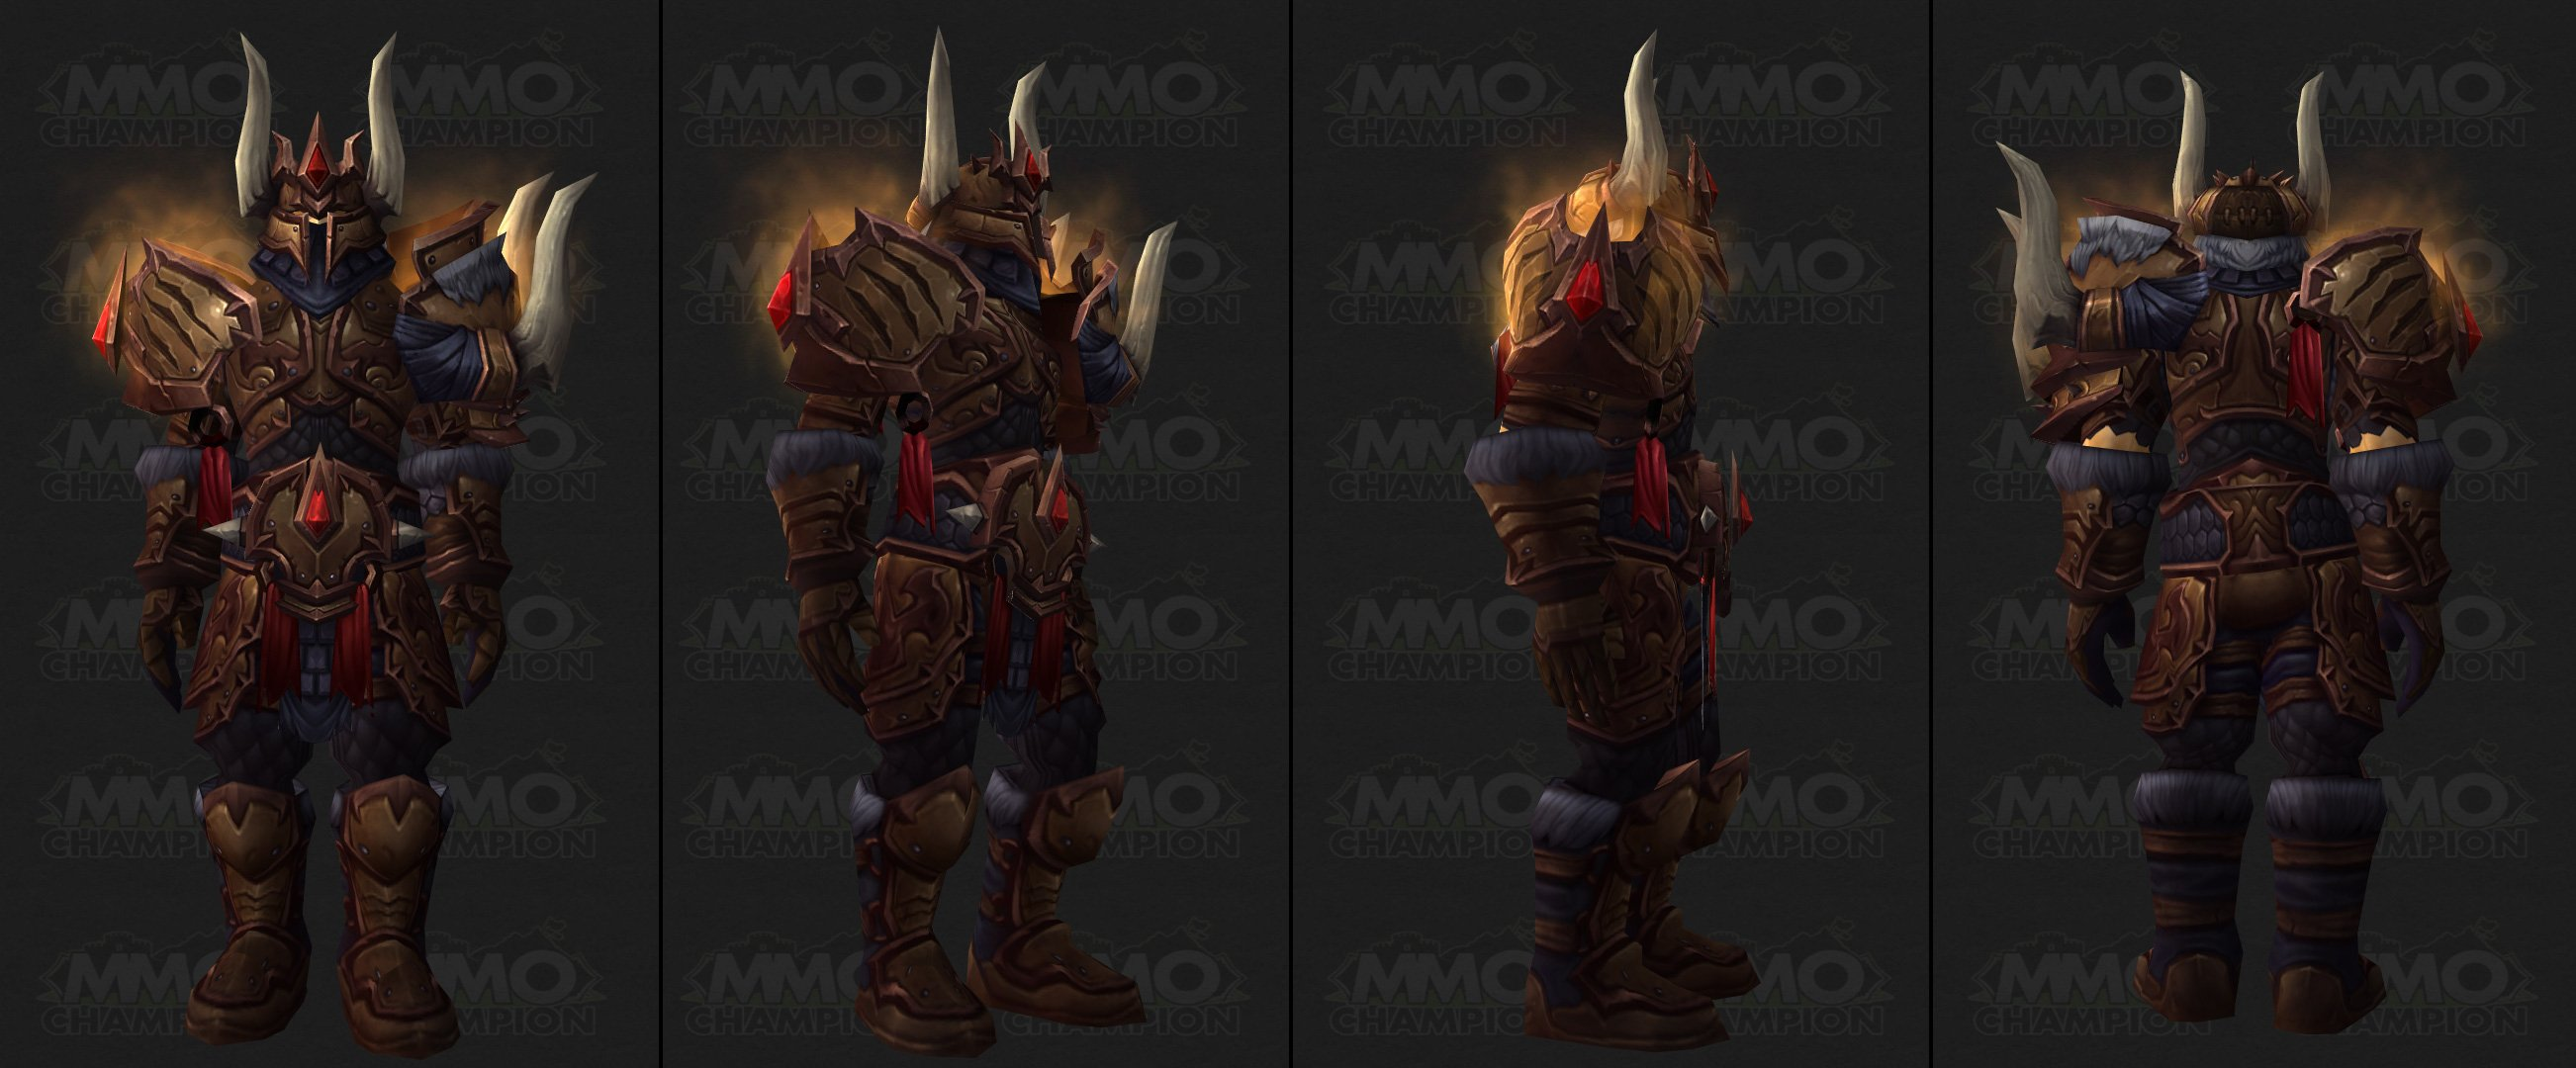 Warrior Male · Female · Video & Challenge Mode Armor Sets - MMO-Champion